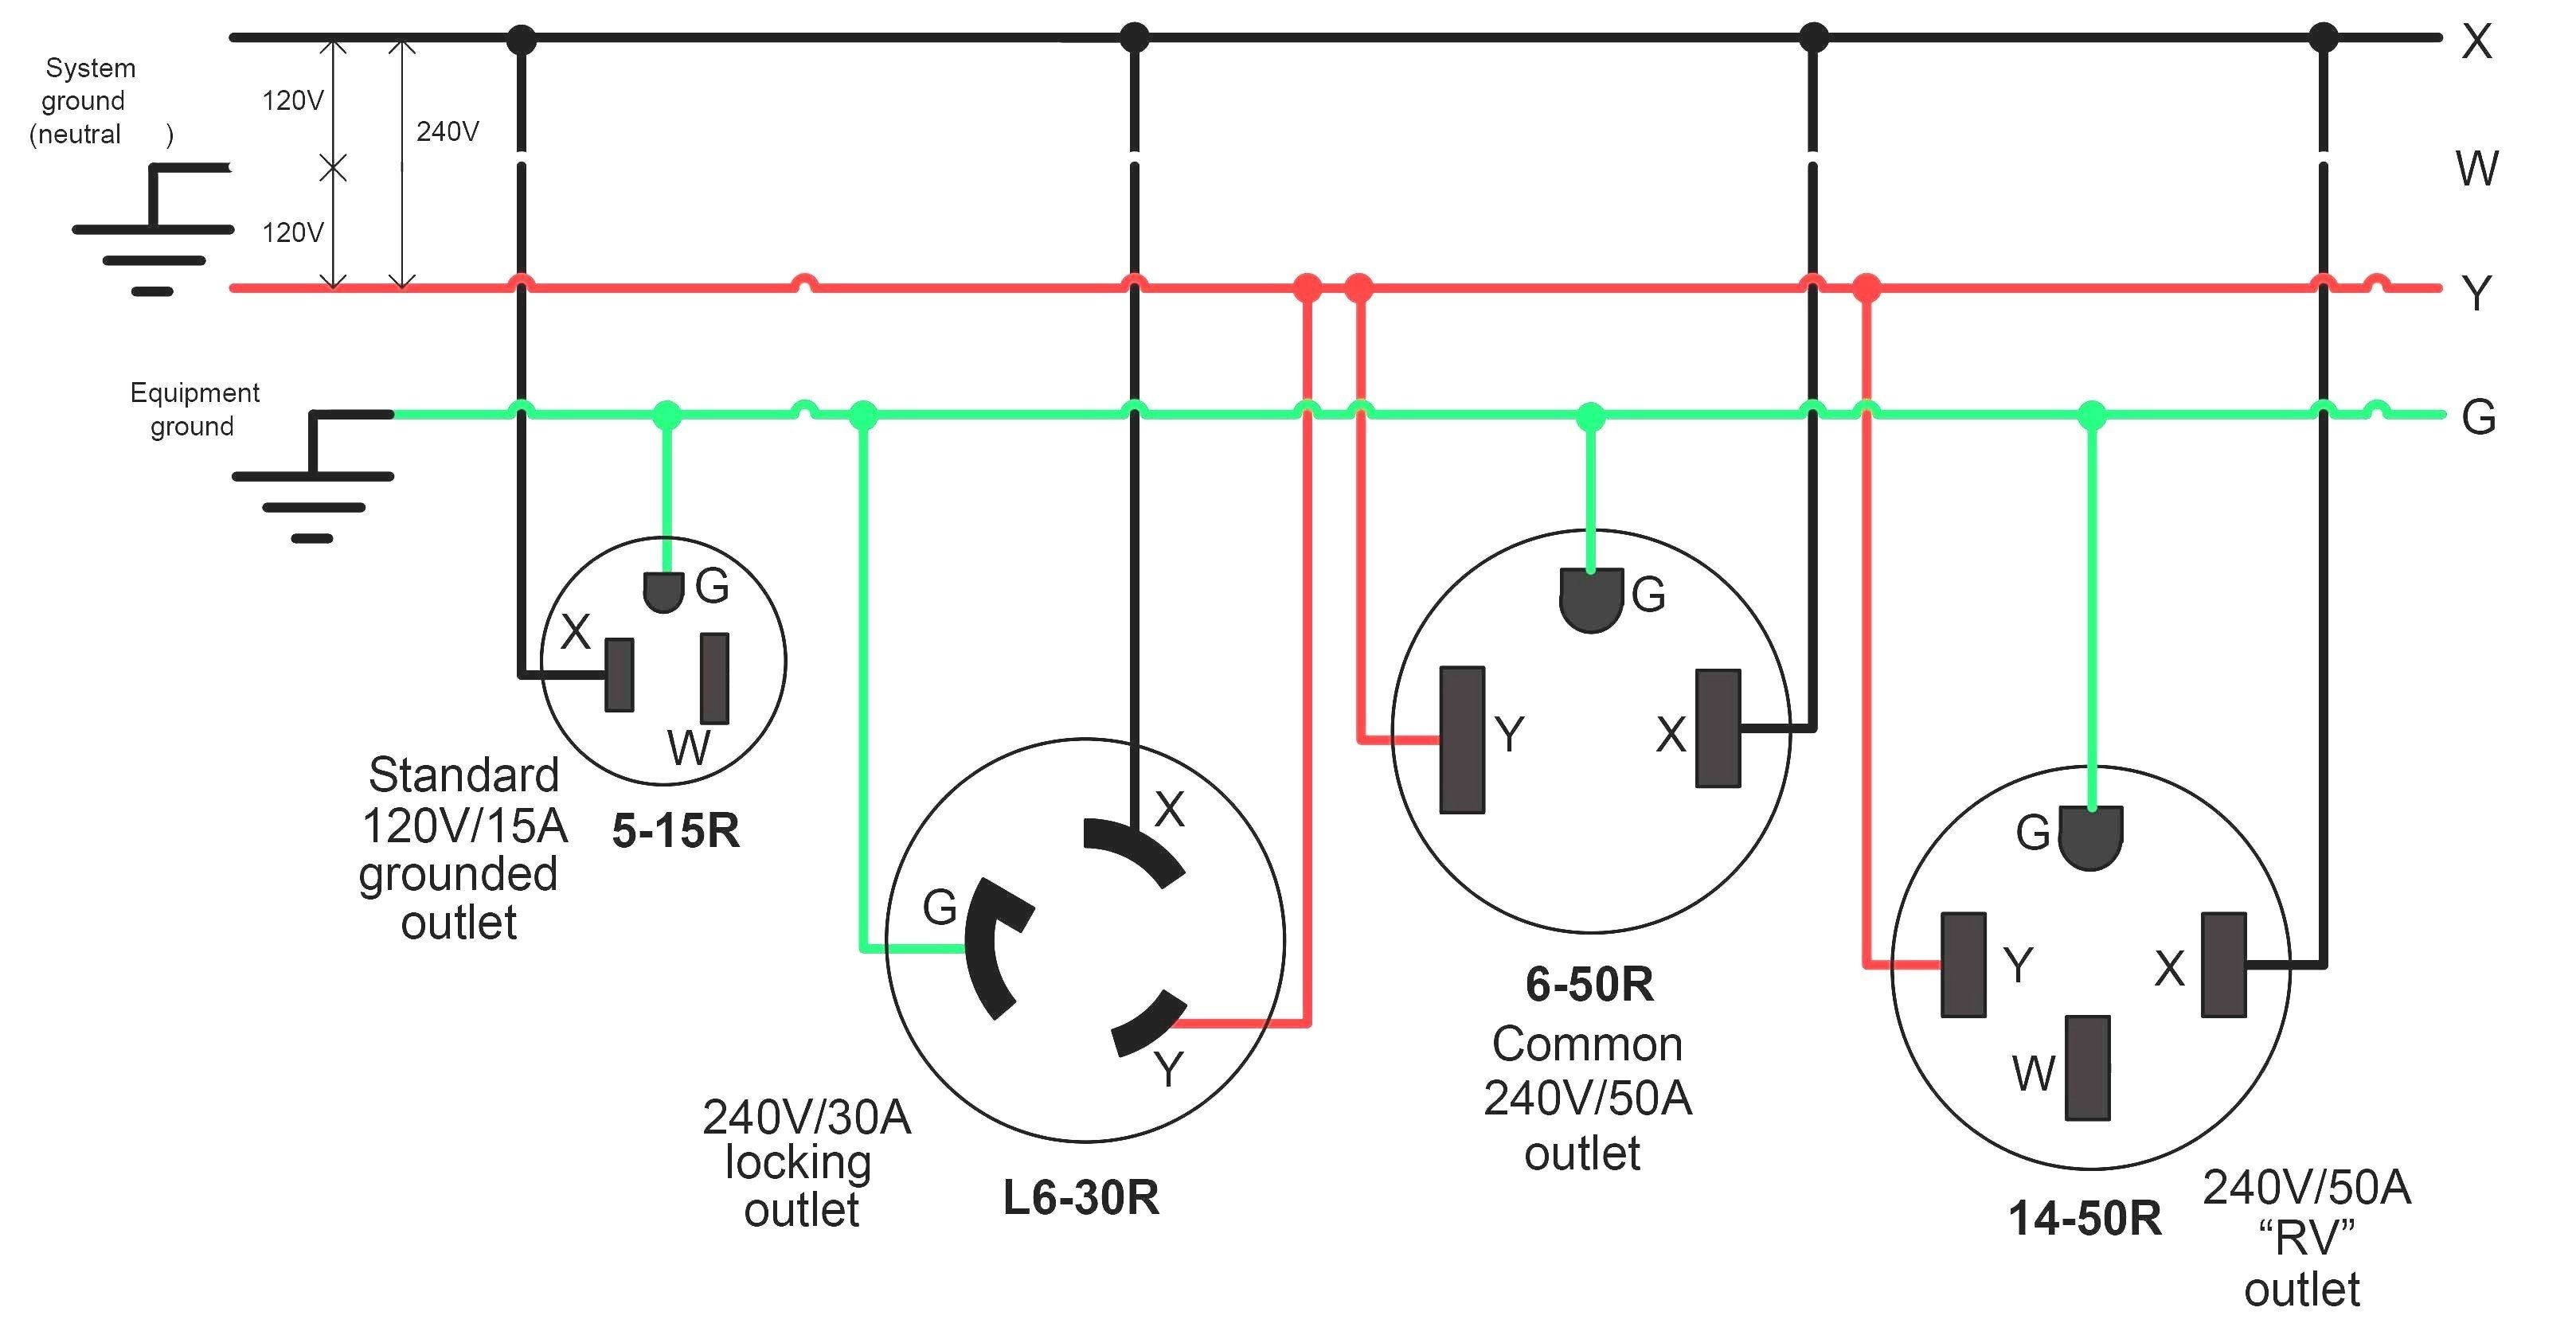 hight resolution of wiring a 240v dryer schematic wiring diagram home wiring a 240v dryer schematic